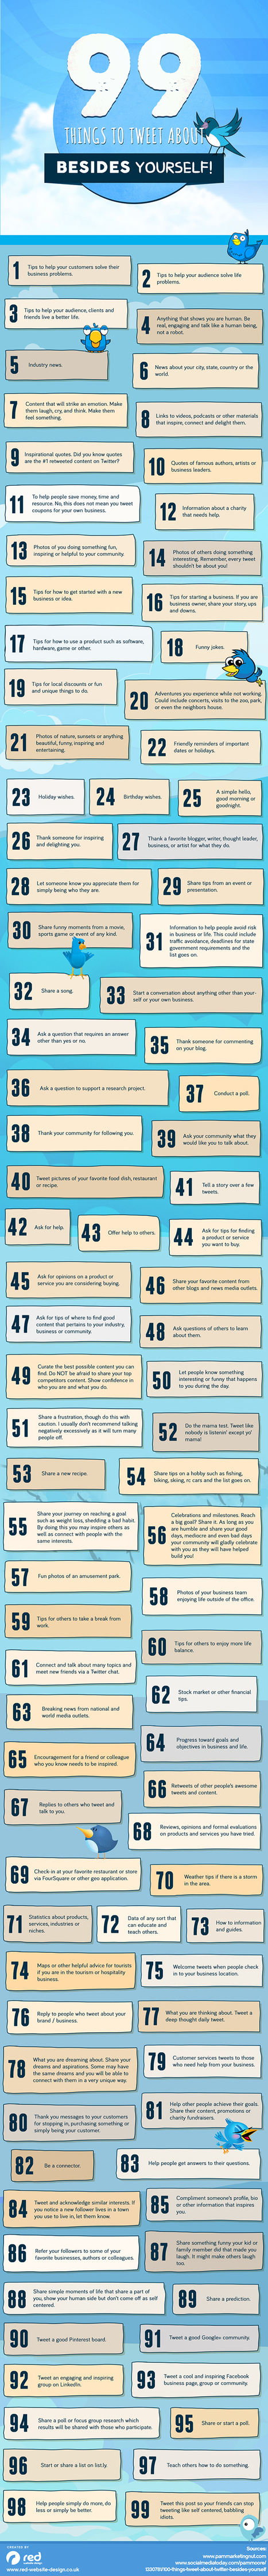 99 Things to Tweet About Besides Yourself | Everything Marketing You Can Think Of | Scoop.it